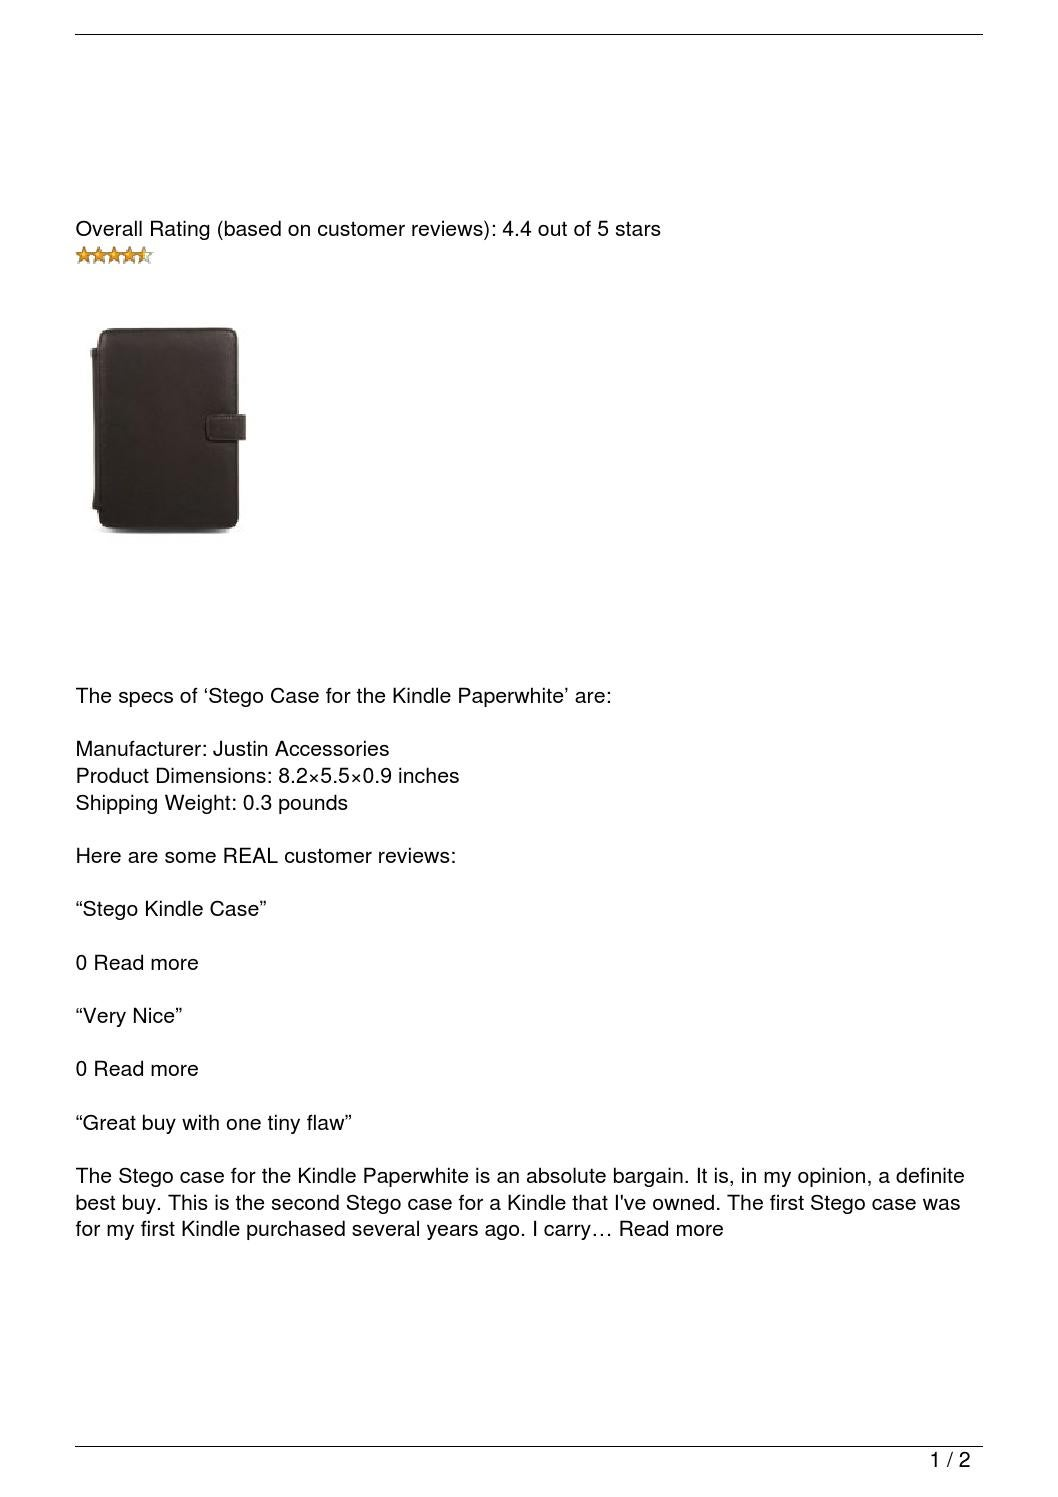 Stego Case for the Kindle Paperwhite Review by best product